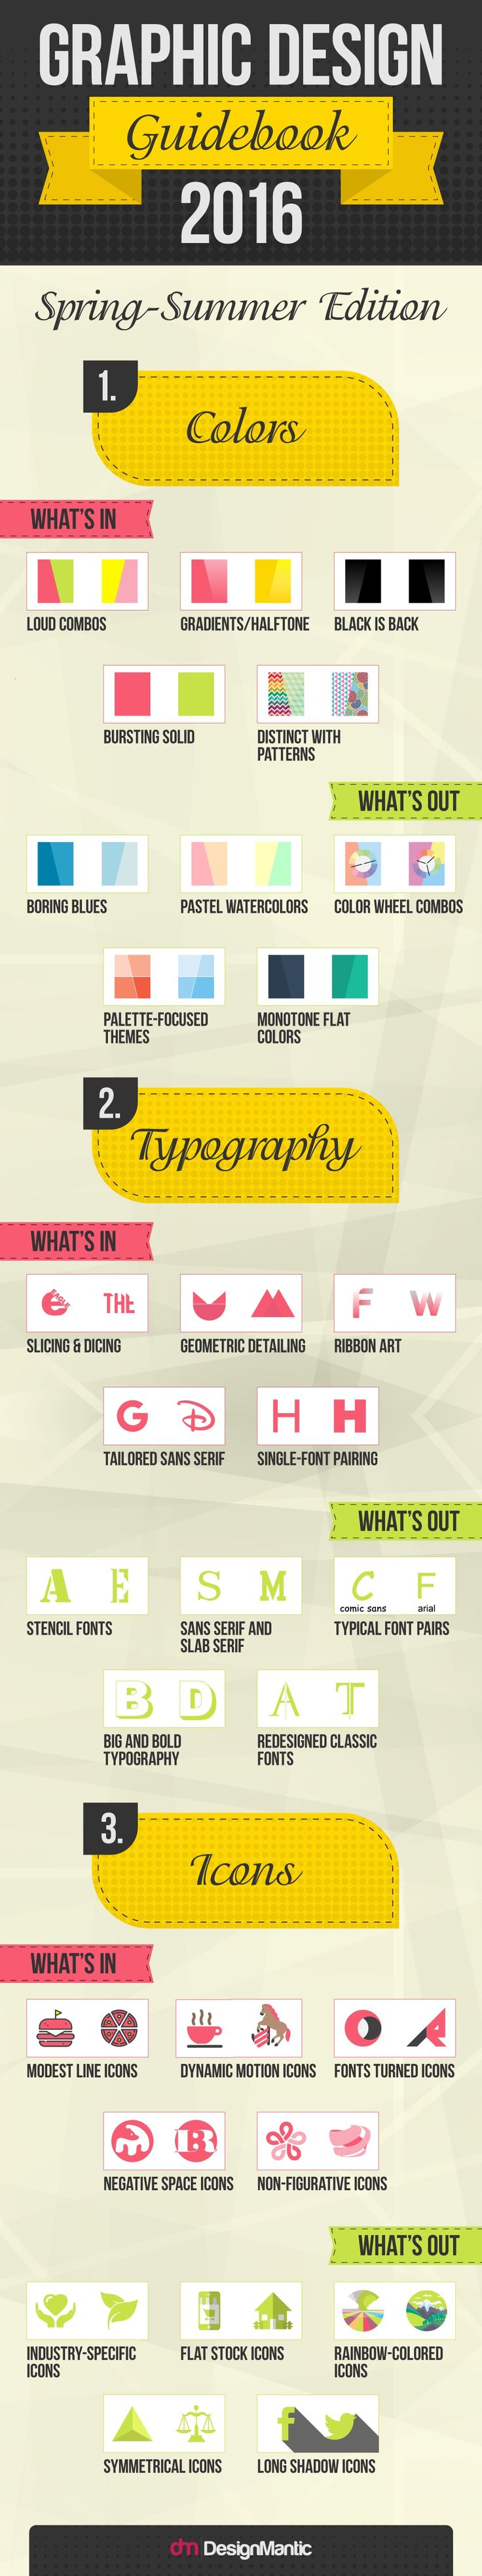 Infographic: Graphic Design Trends For Spring And Summer 2016 - DesignTAXI.com